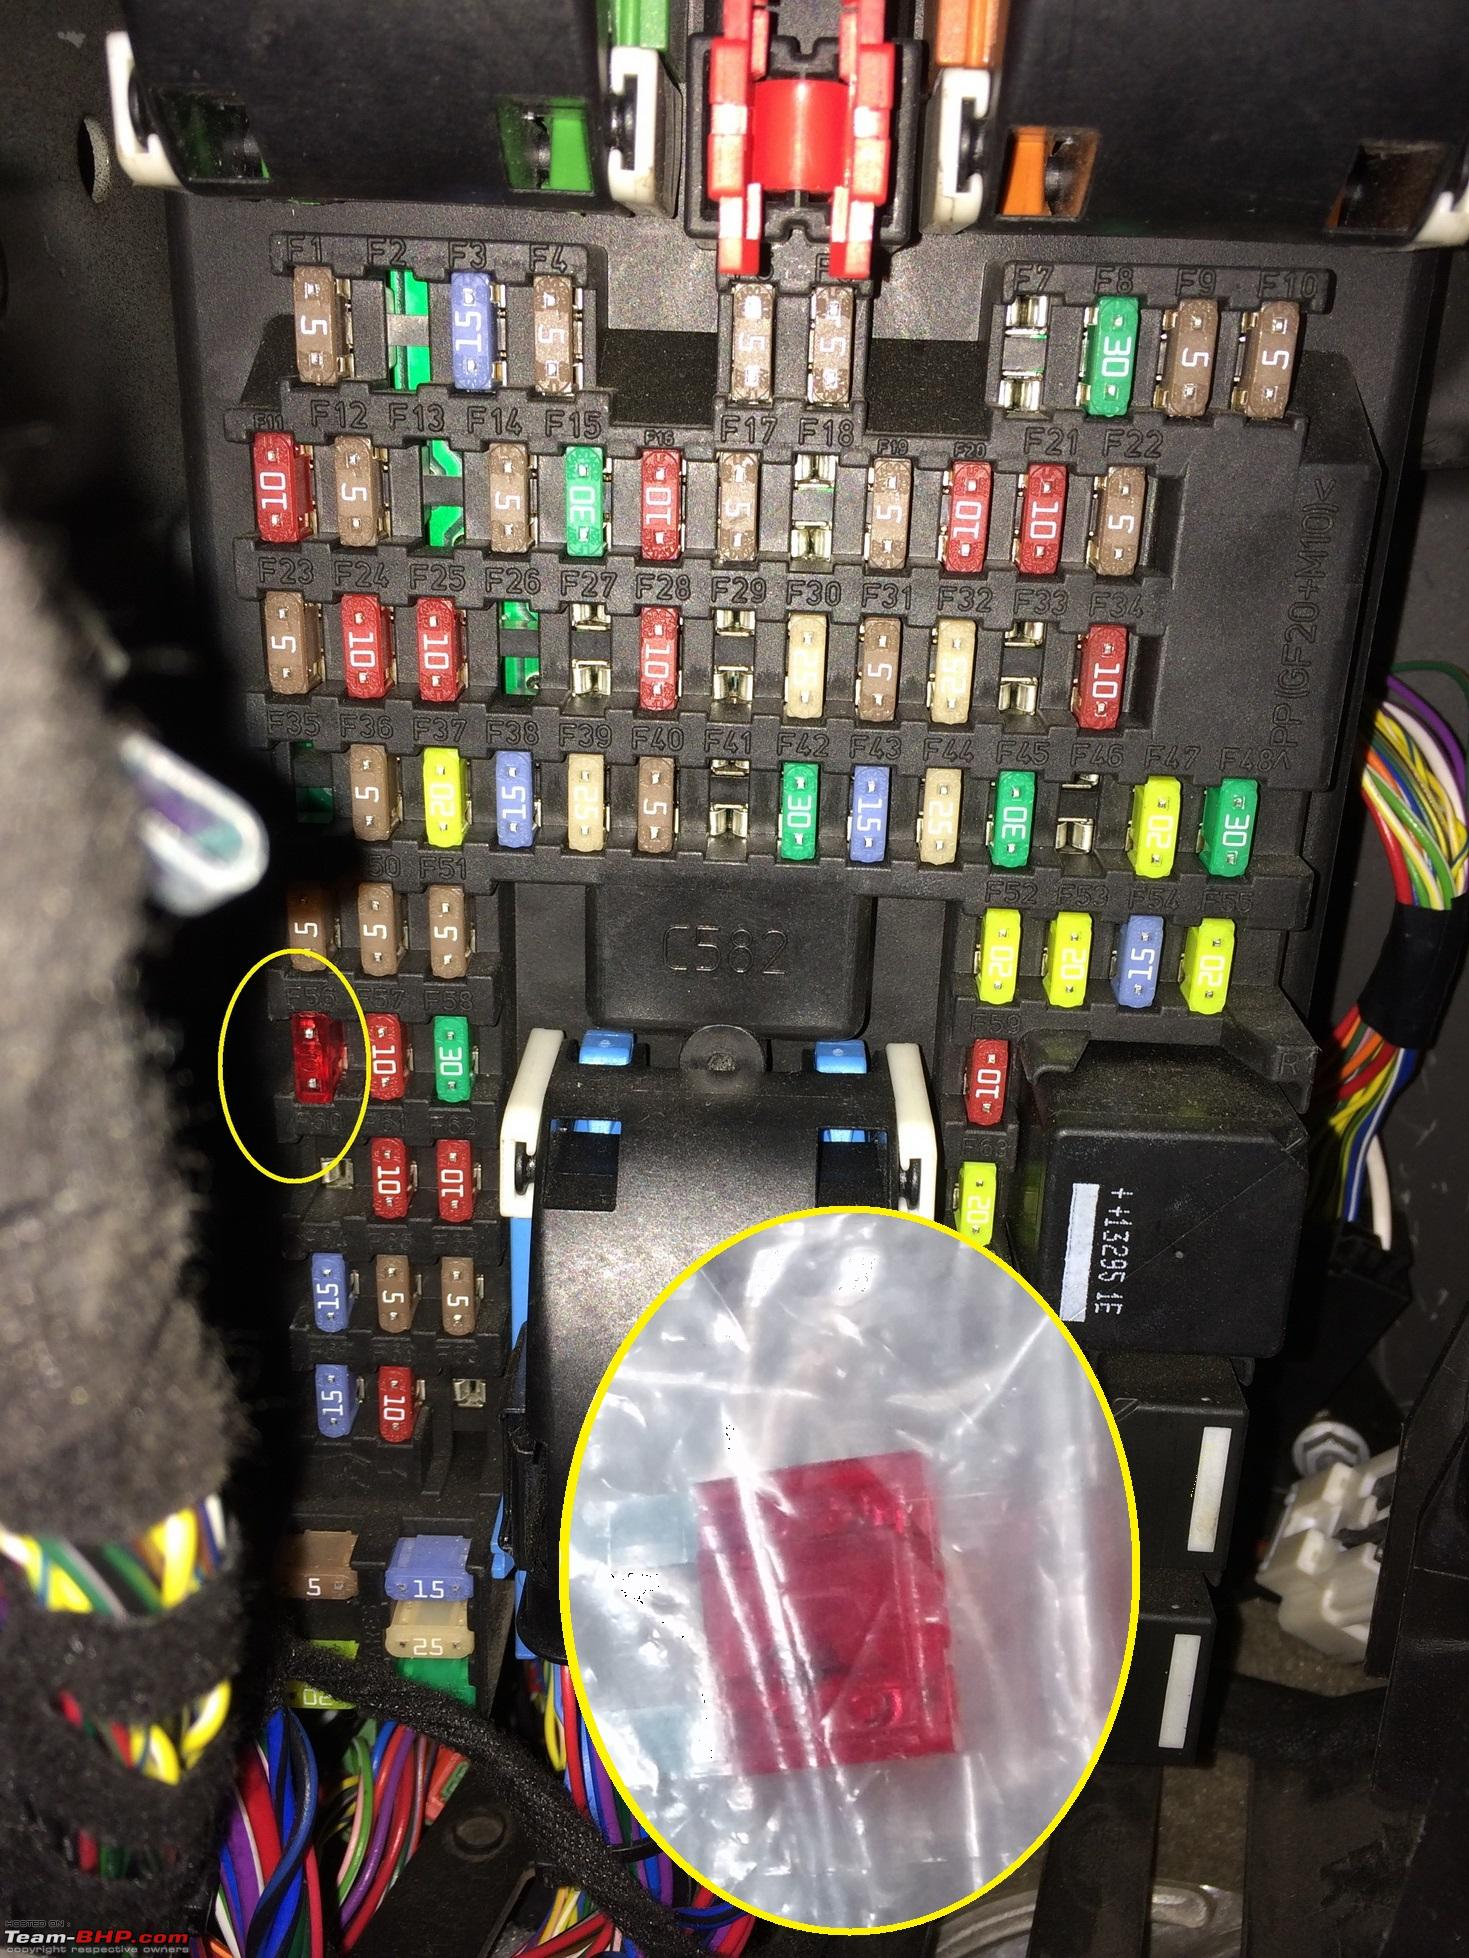 hight resolution of land rover discovery 4 a near death experience continuous problems poor service picture of the fuse box